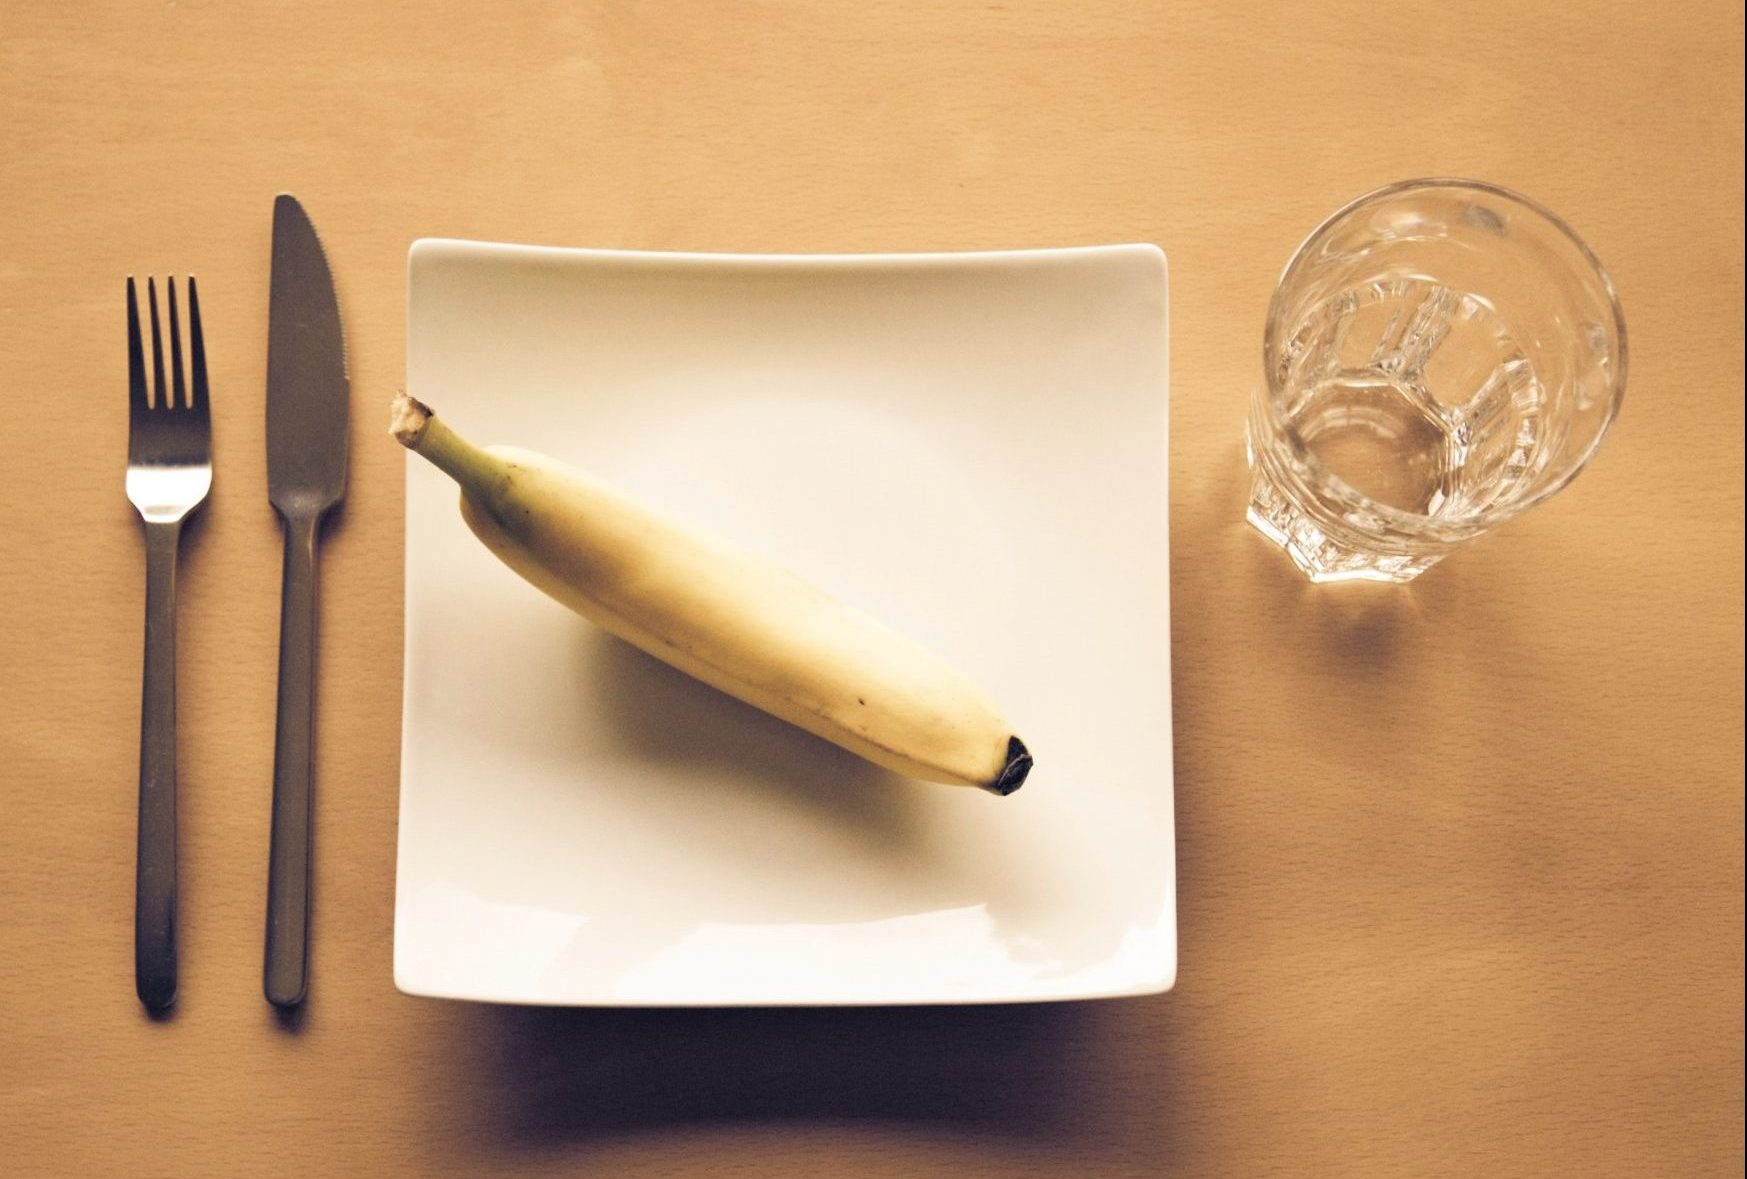 Banana on plate, diet culture